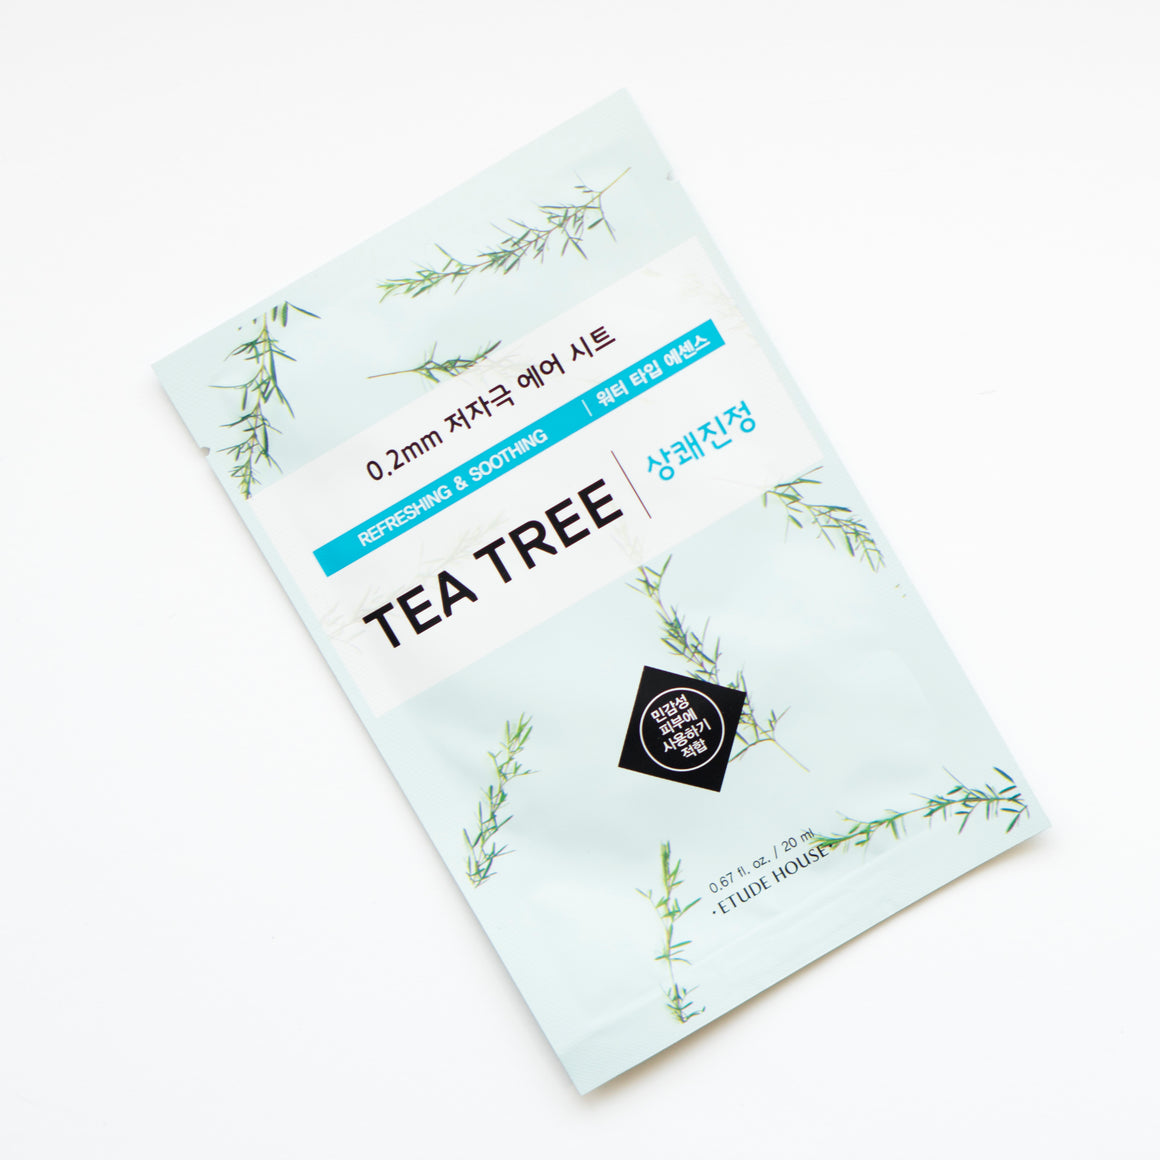 ETUDE HOUSE 0.2 Therapy Air Mask - Tea Tree